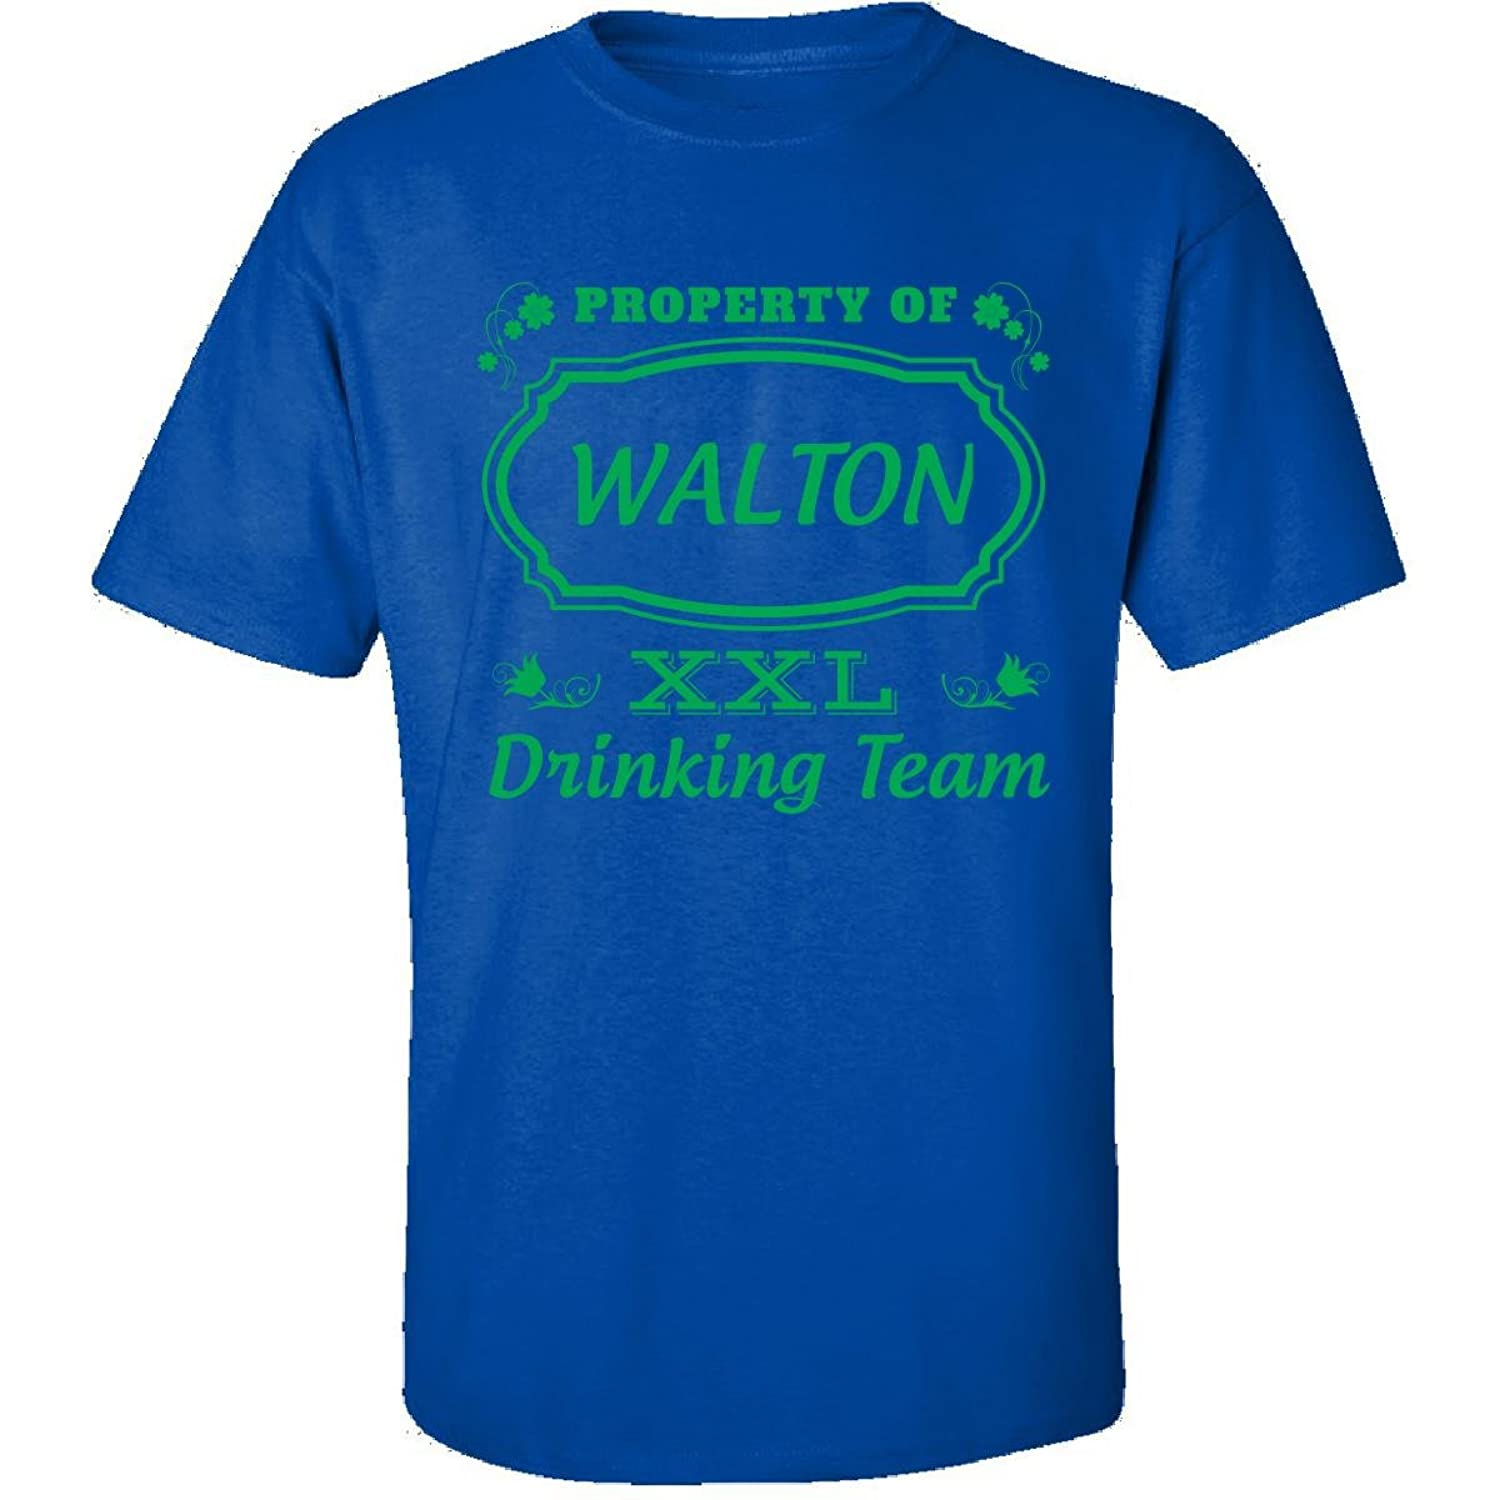 Property Of Walton St Patrick Day Beer Drinking Team - Adult Shirt